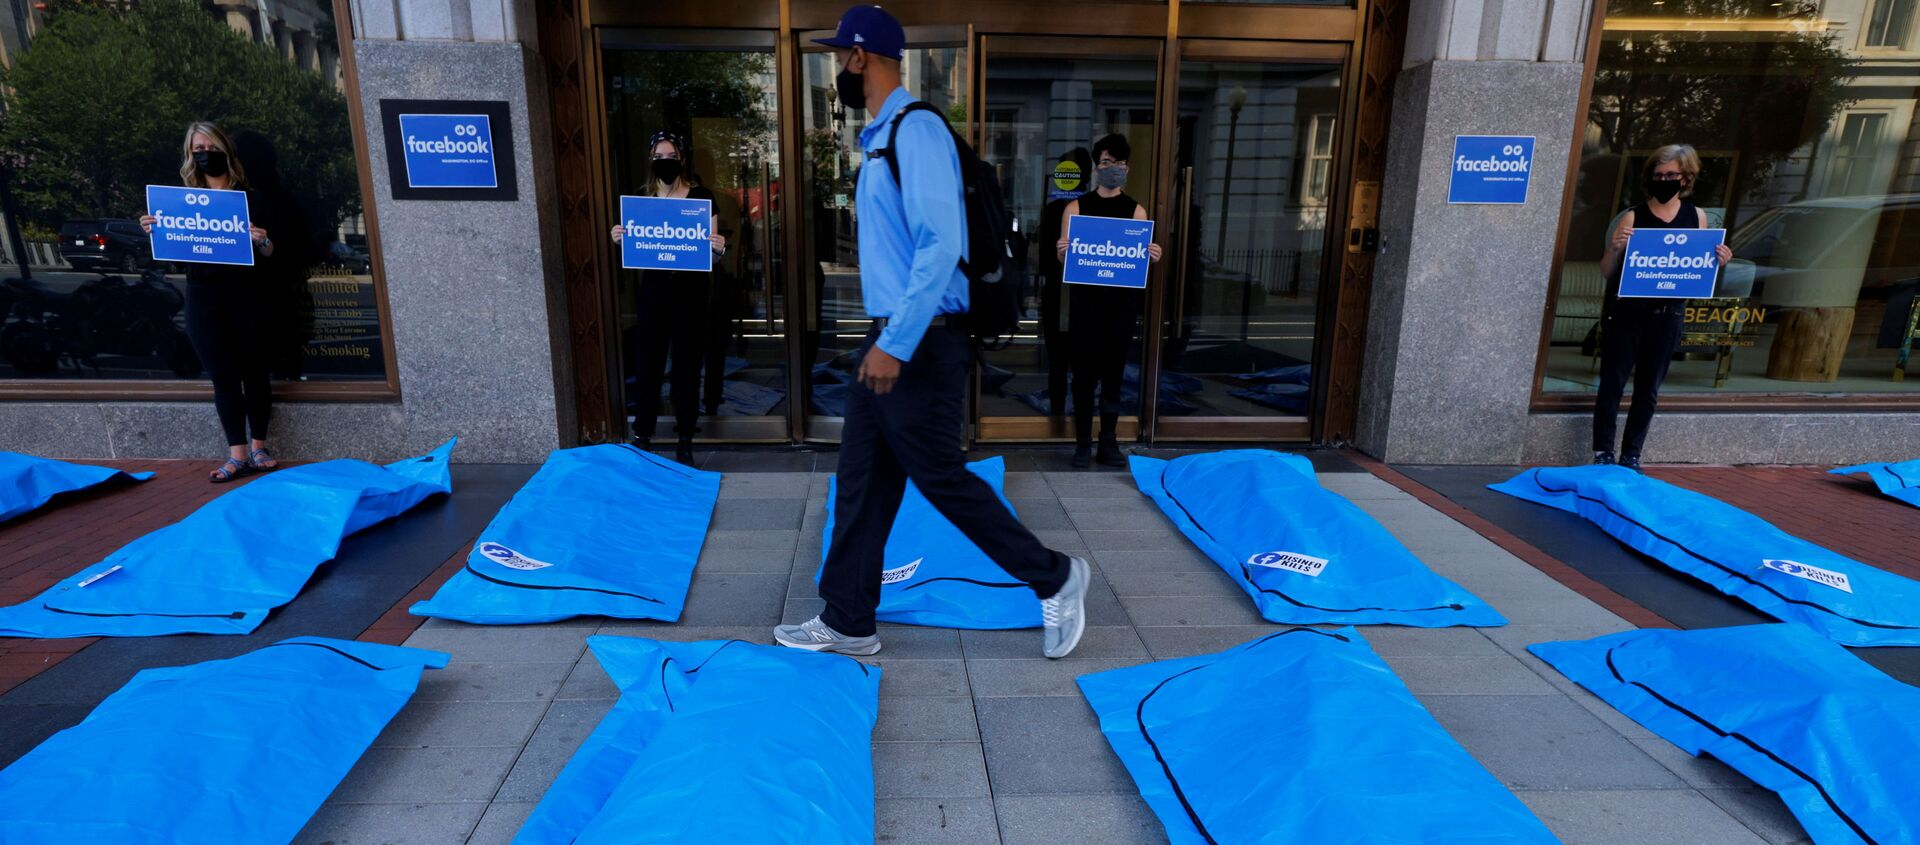 A pedestrian walks through an art installation of body bags as demonstrators protest against Facebook and what they claim is disinformation regarding coronavirus disease (COVID-19) on the social media giant's platform, outside Facebook headquarters in Washington, U.S., July 28, 2021 - Sputnik International, 1920, 29.07.2021